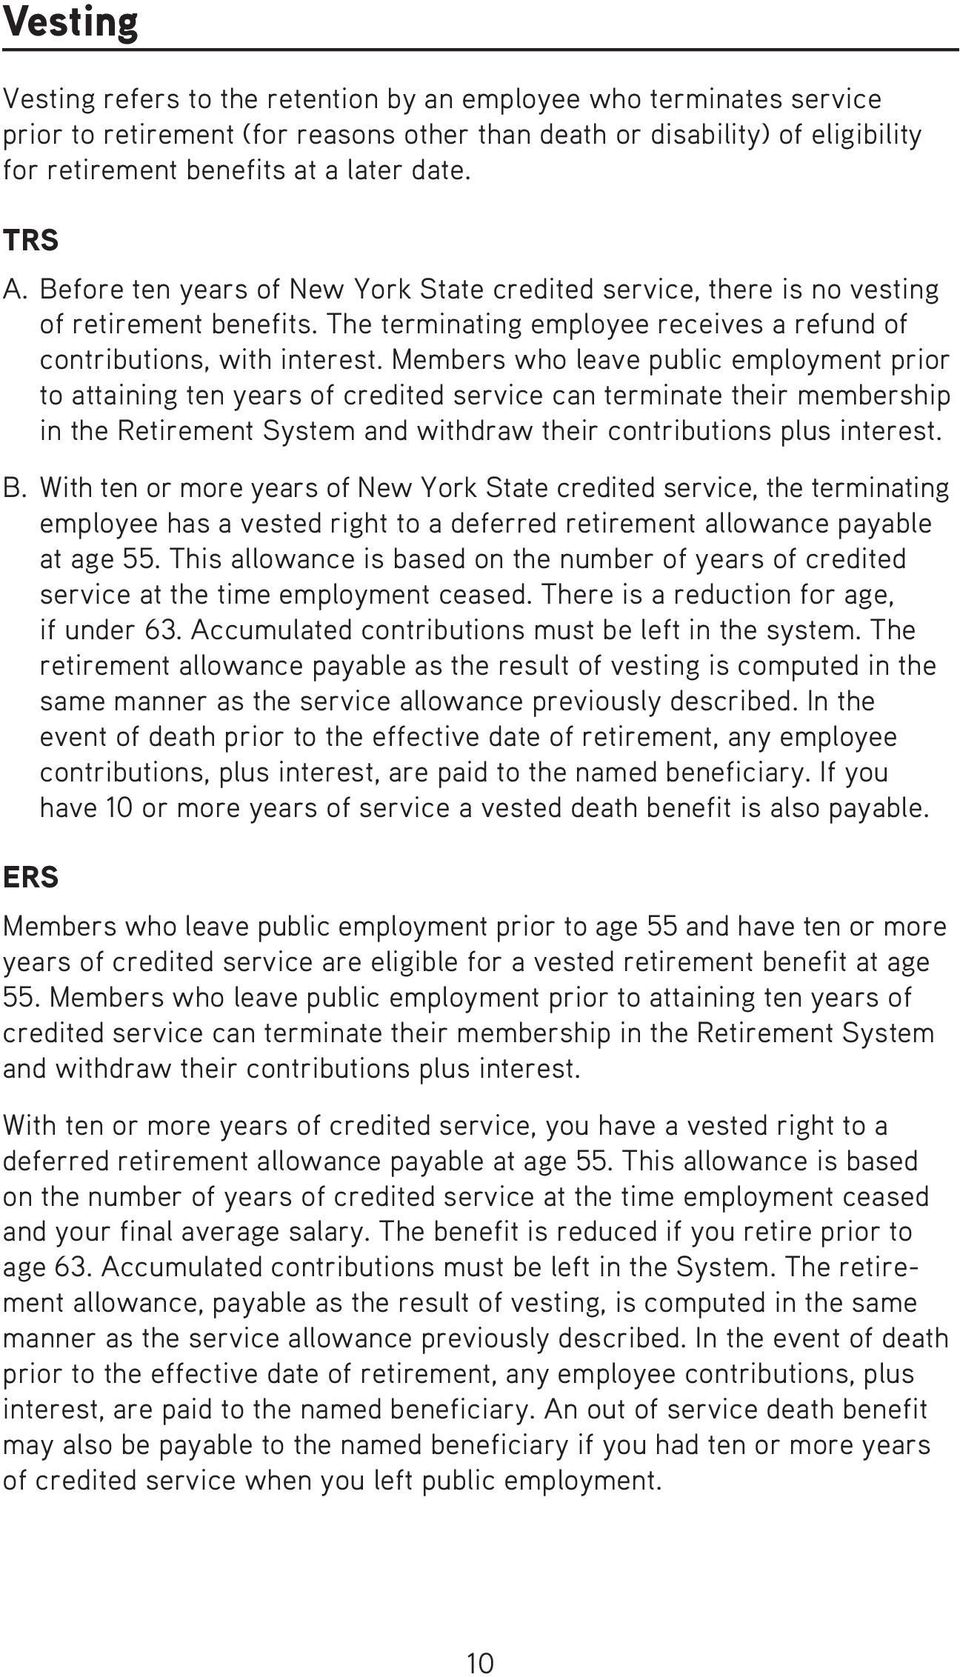 Members who leave public employment prior to attaining ten years of credited service can terminate their membership in the Retire ment System and withdraw their contributions plus interest. B.